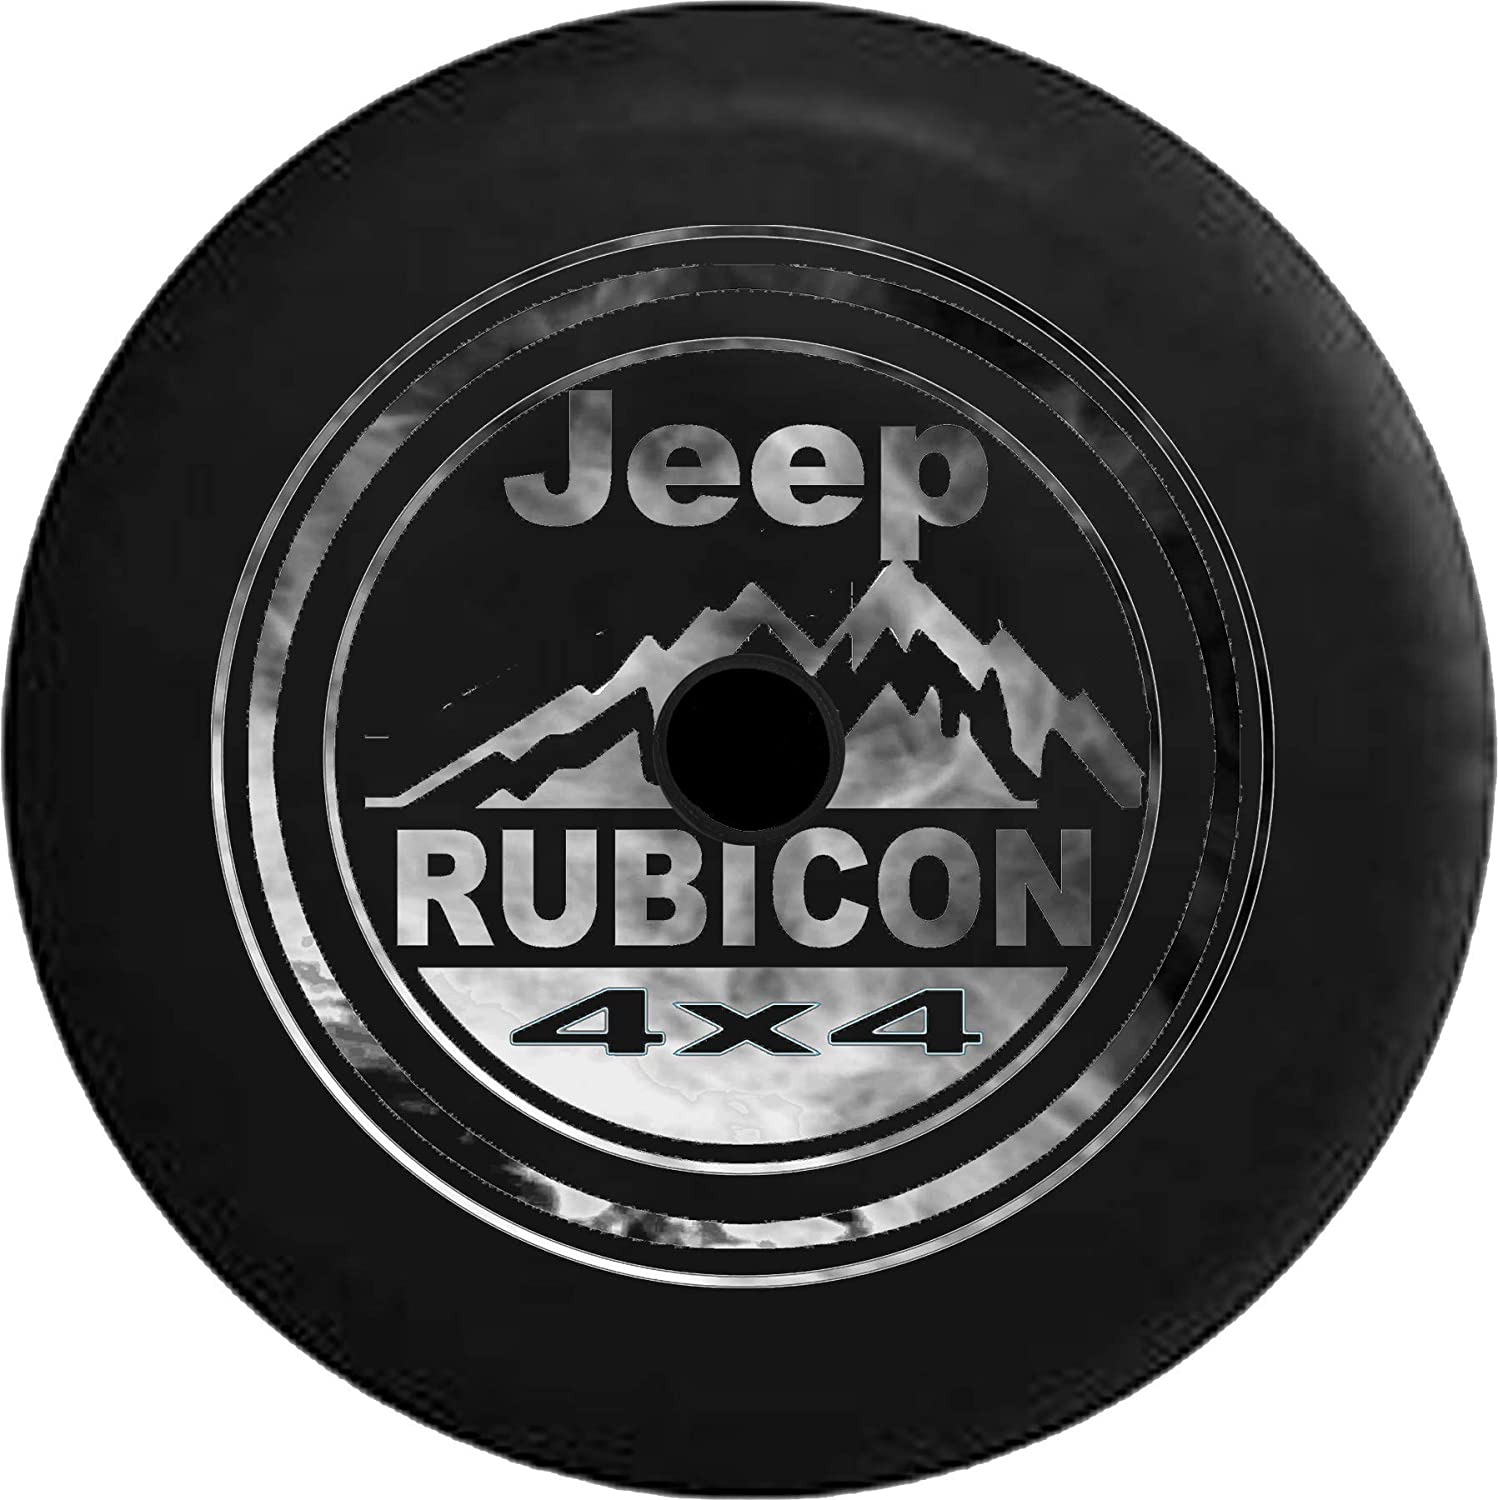 JL Series Jeep Spare Tire Cover with Backup Camera Hole Smoked Out Jeep Rubicon 4x4 Mountains Black 33 in